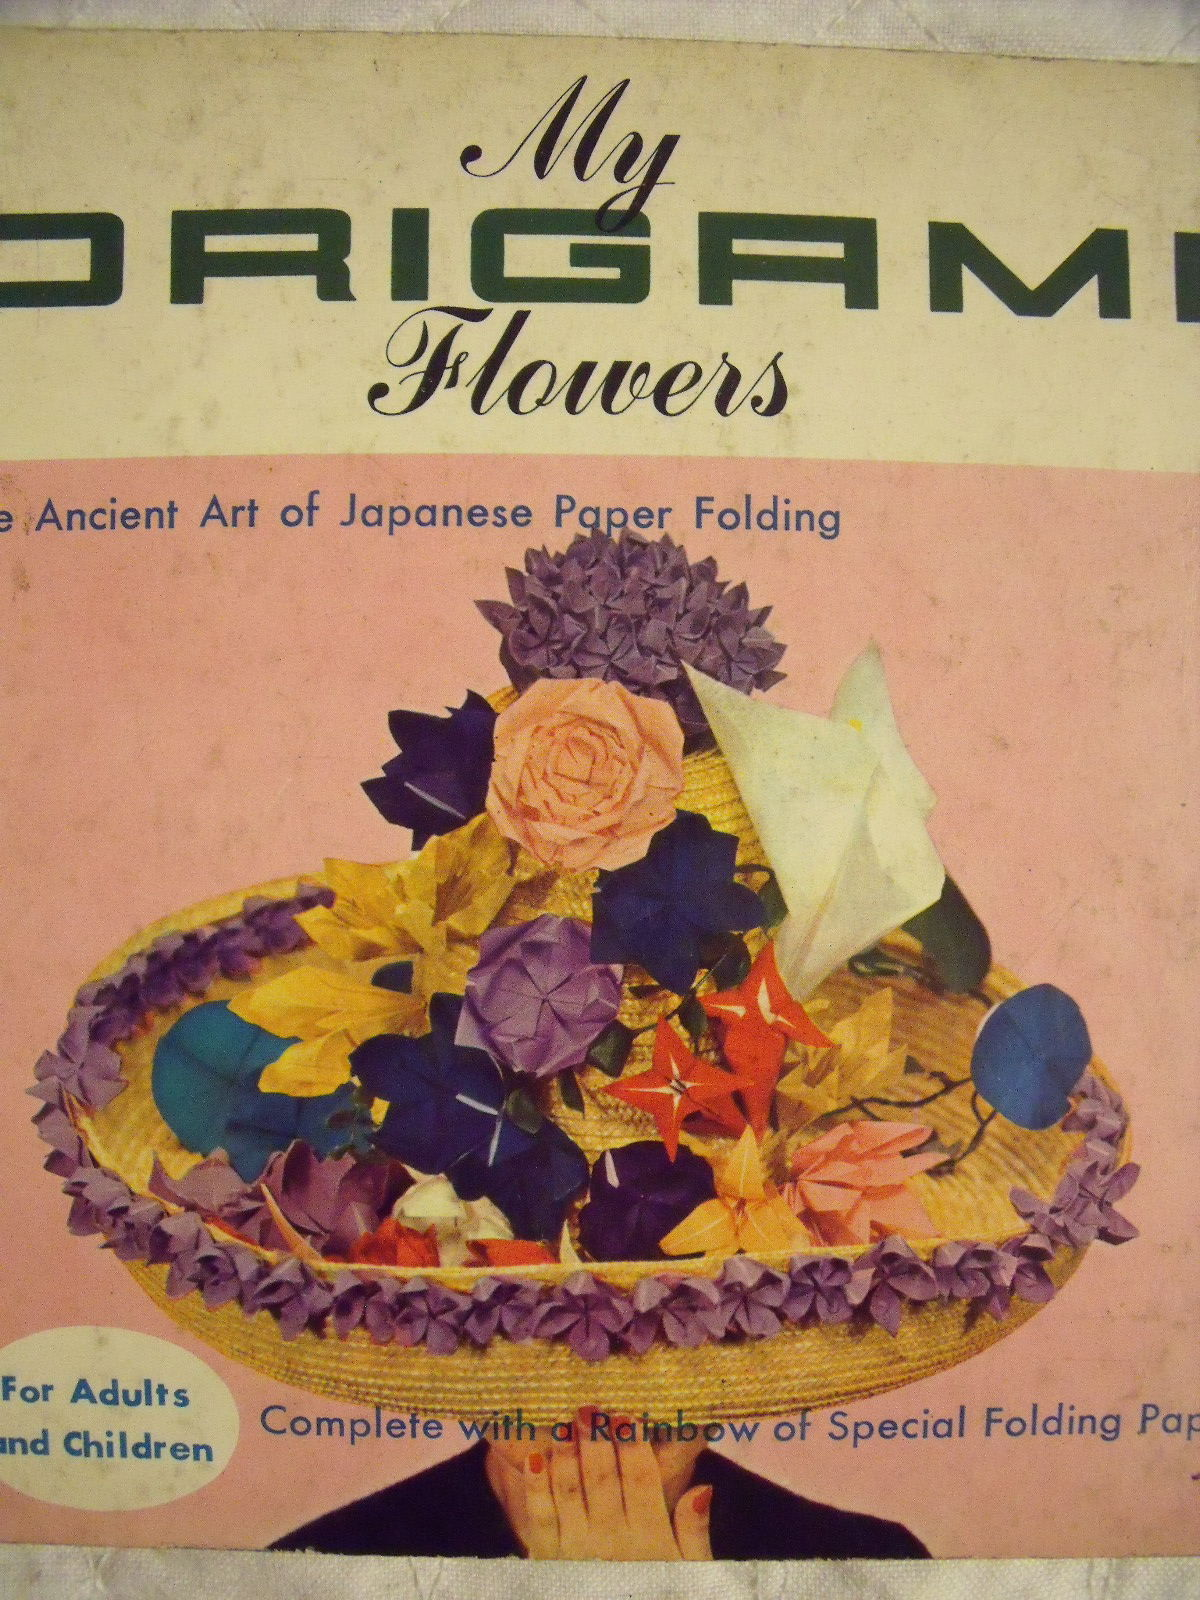 origami the japanese art of paper folding All about japanese origami with the extensive information and beautiful photos japan's original fine art of folding paper.